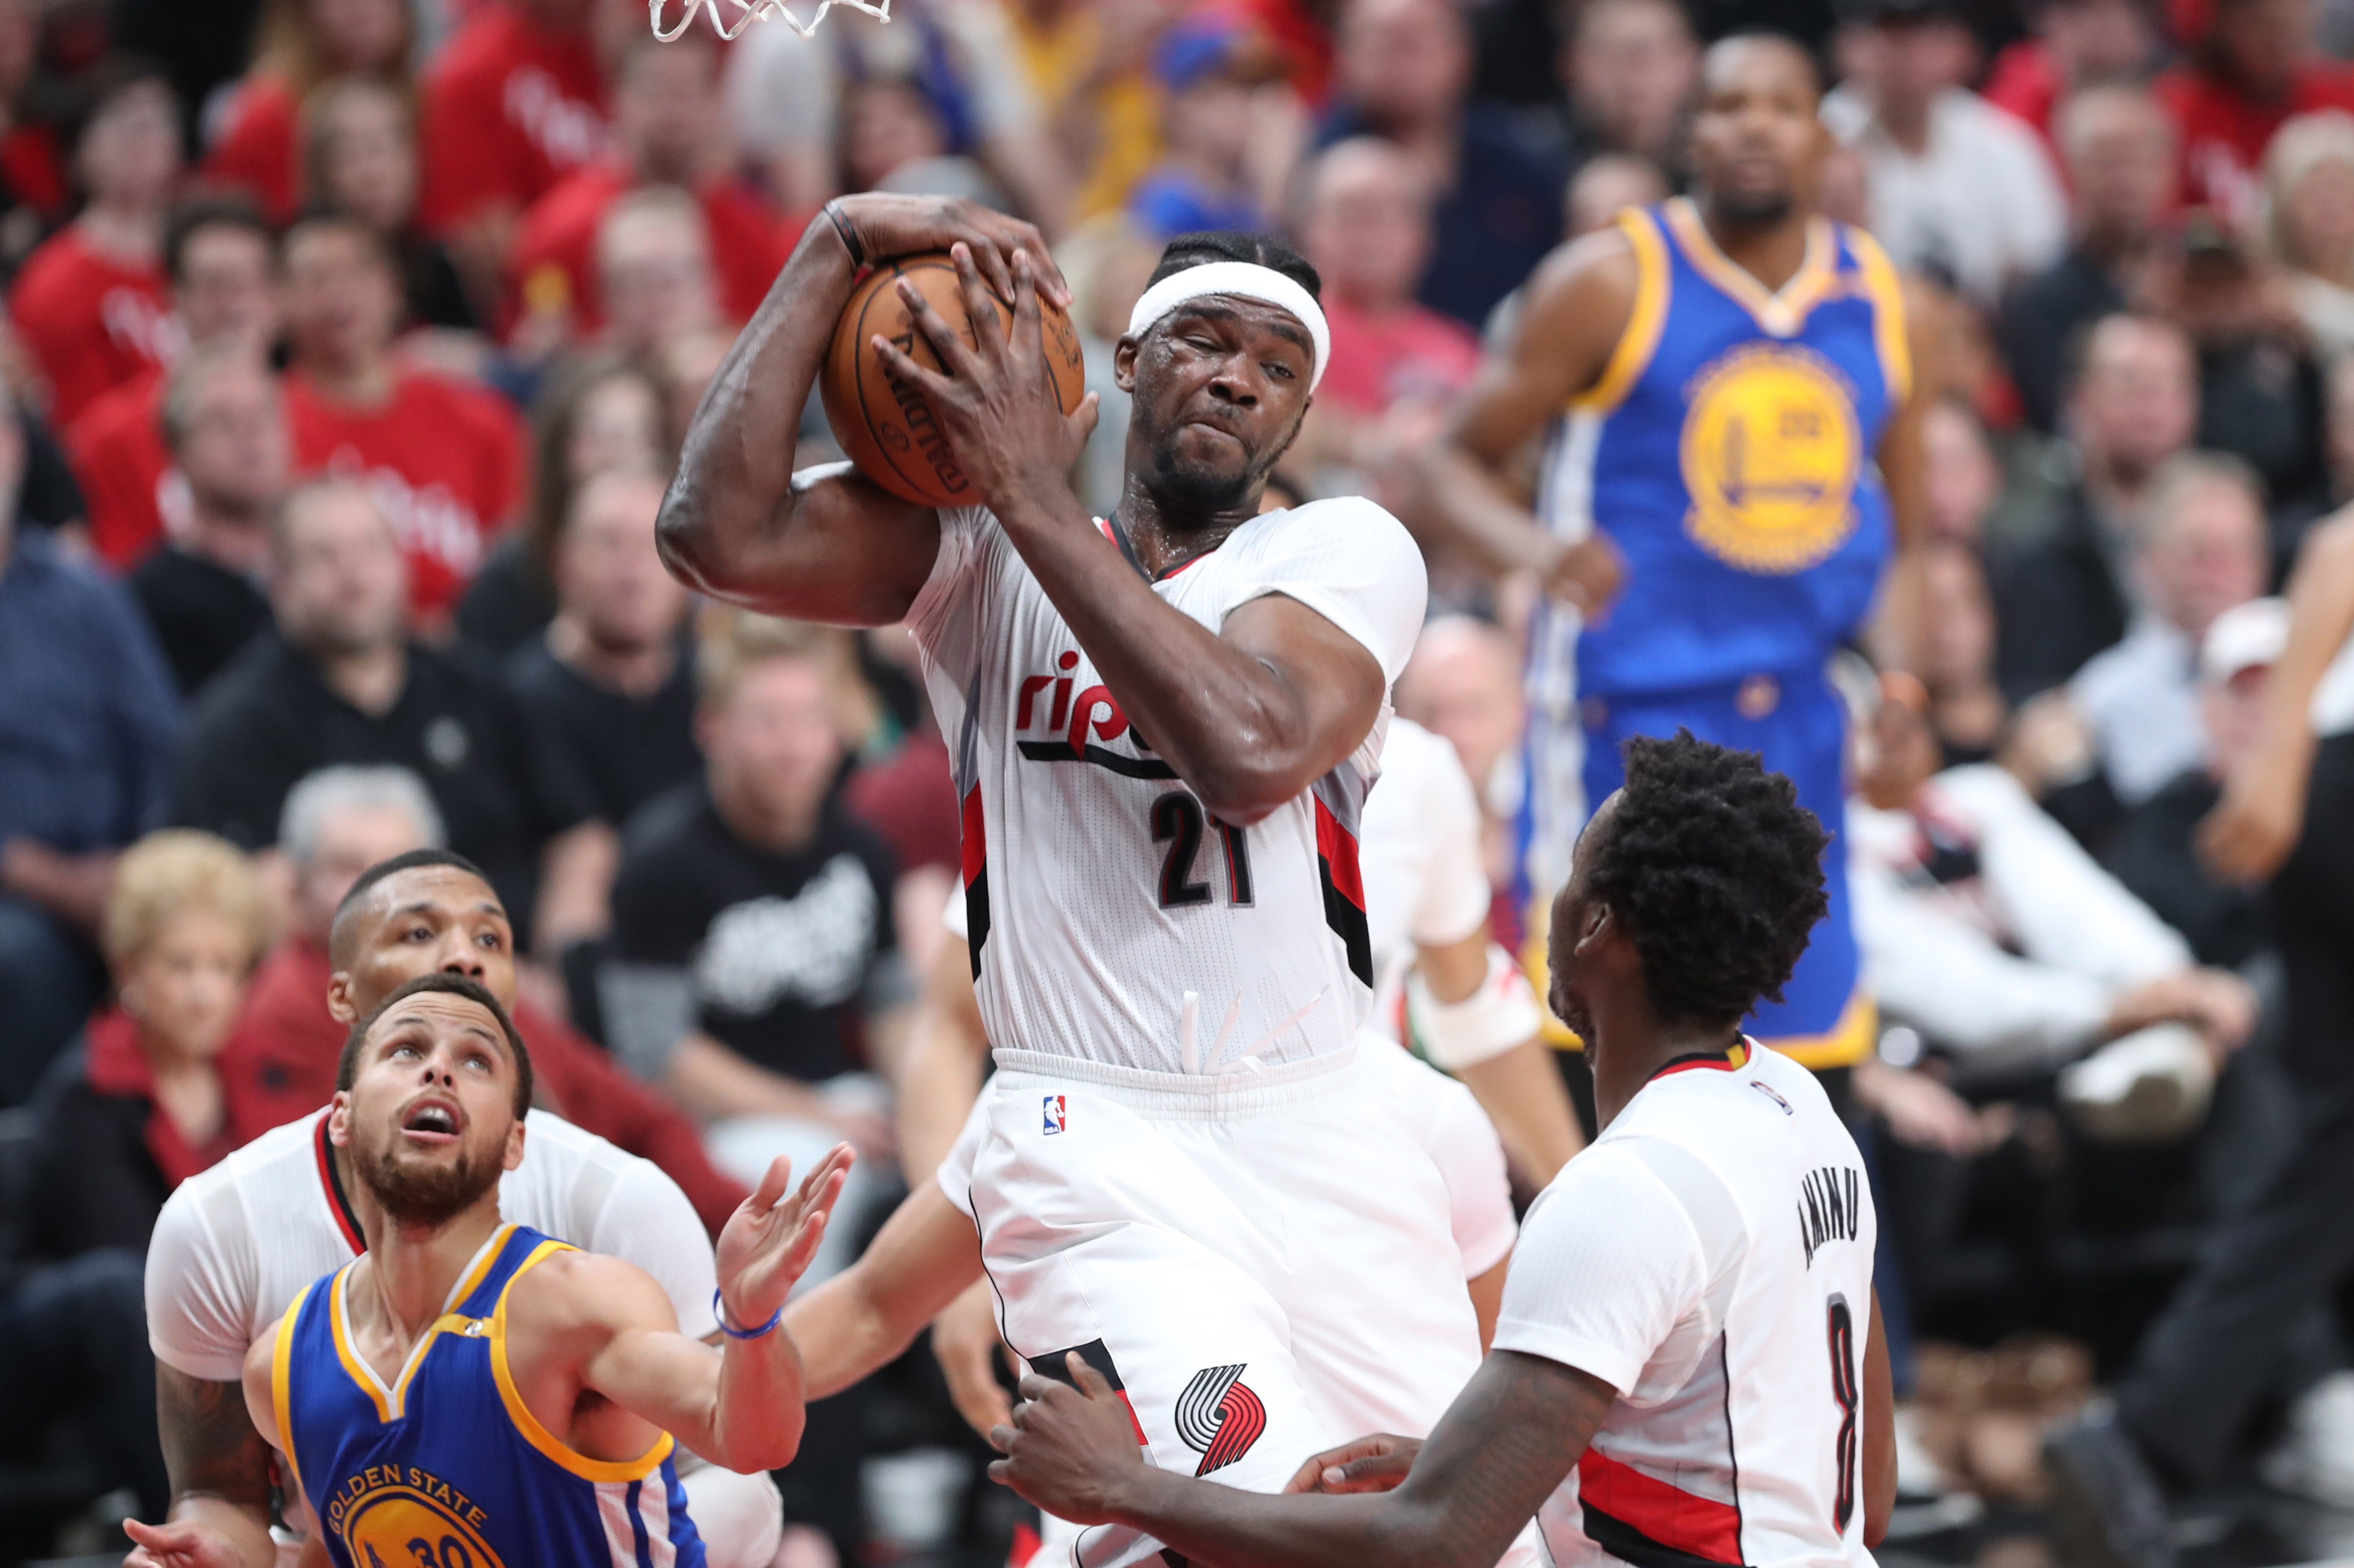 Portland Trail Blazers: Playoff Experience Beneficial To Growth